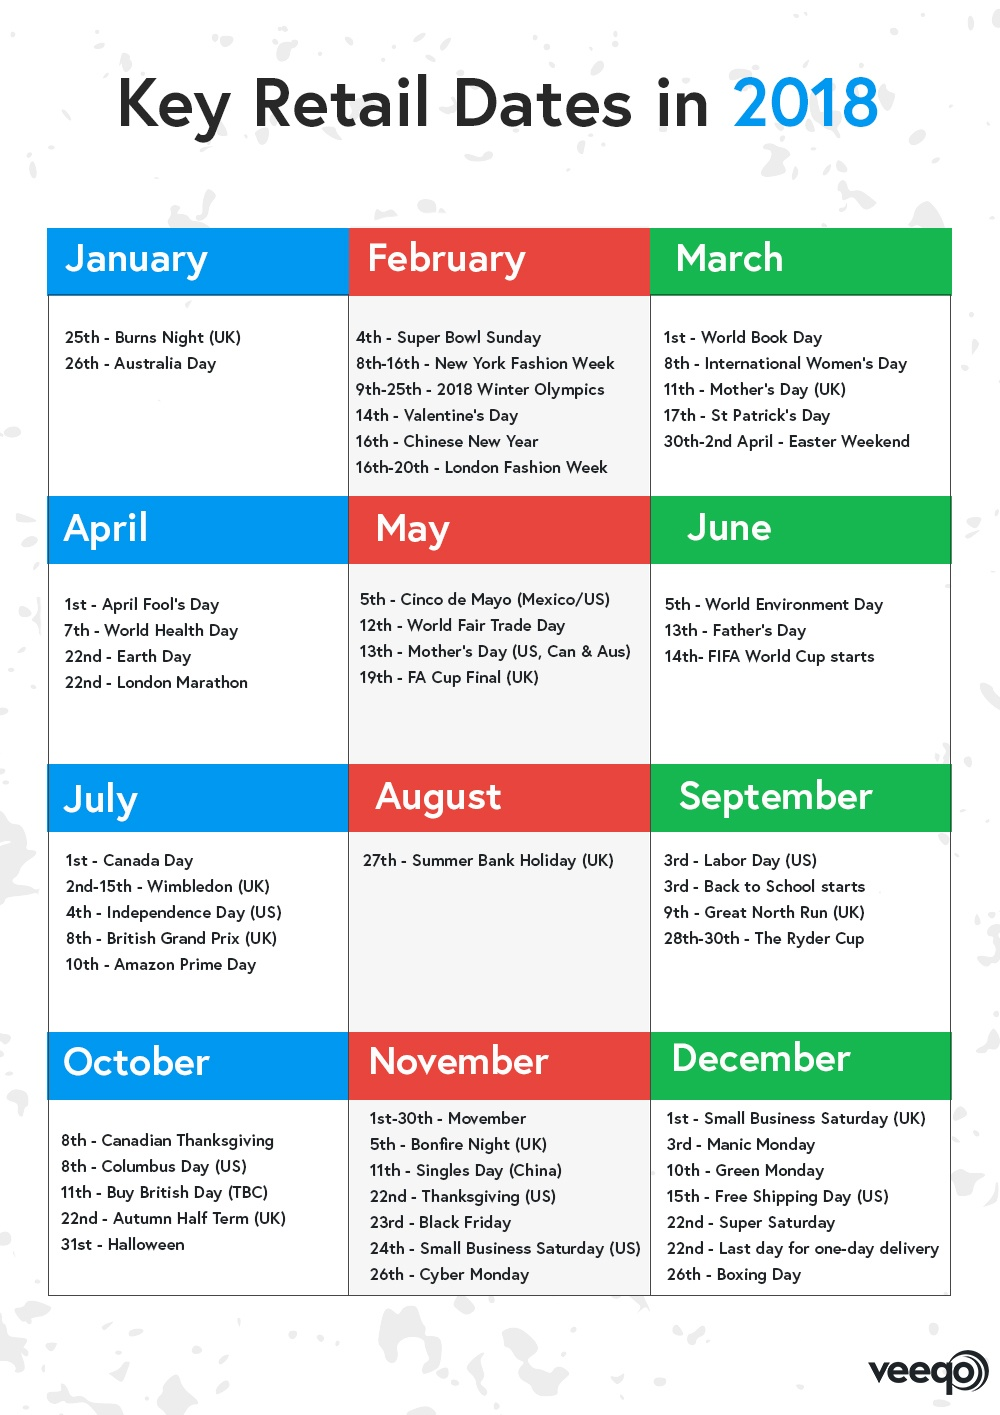 a picture showing a retail marketing calendar for 2018